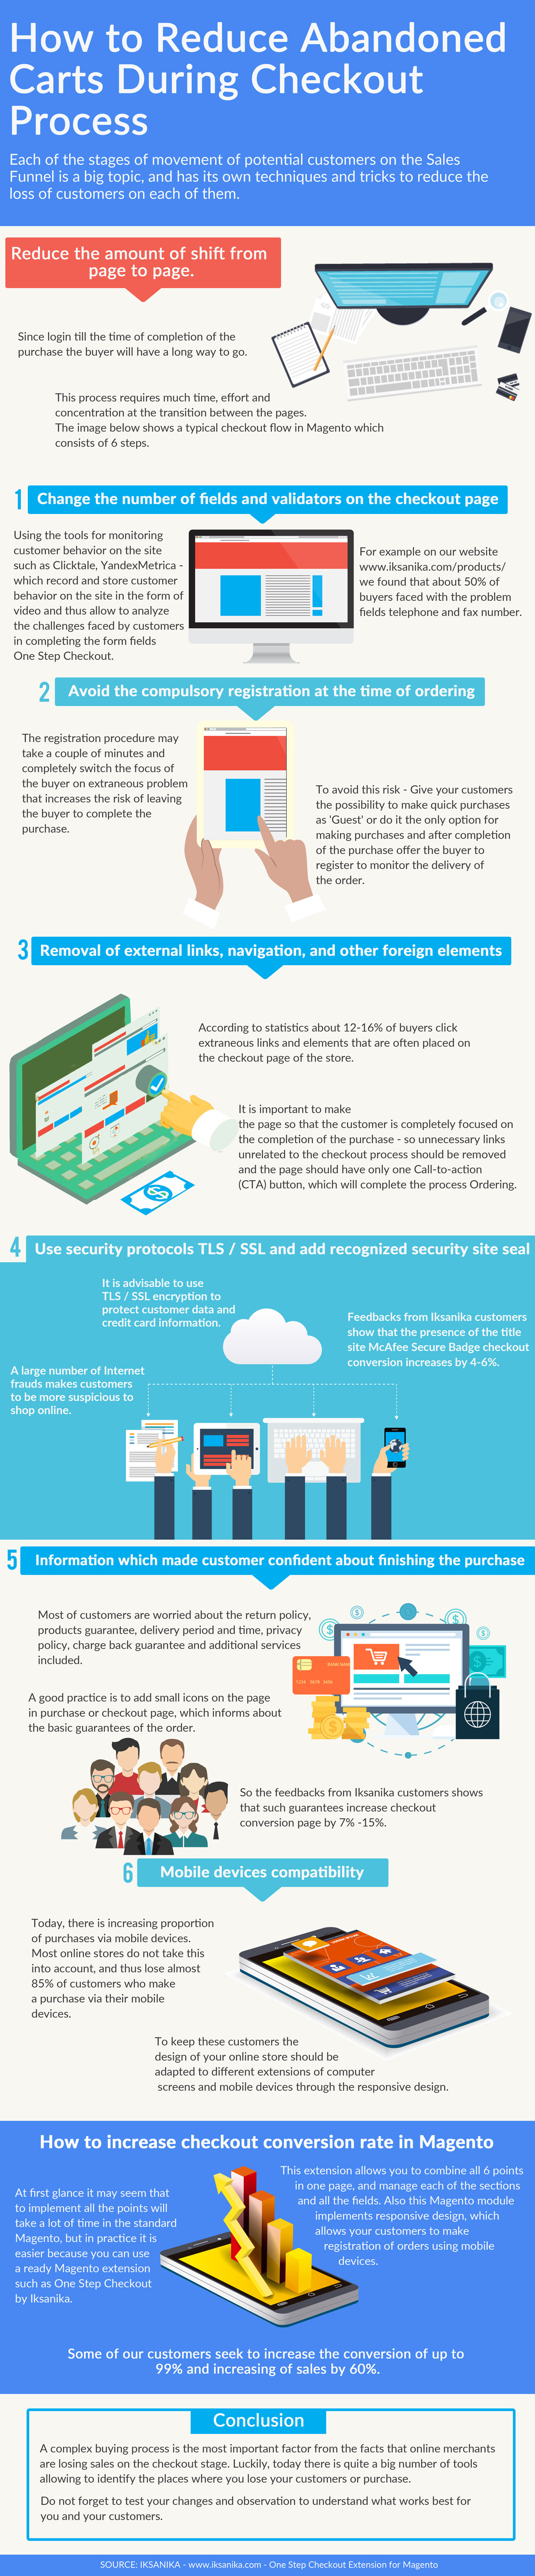 How to reduce abandoned carts during checkout process in Magento. Infographic.